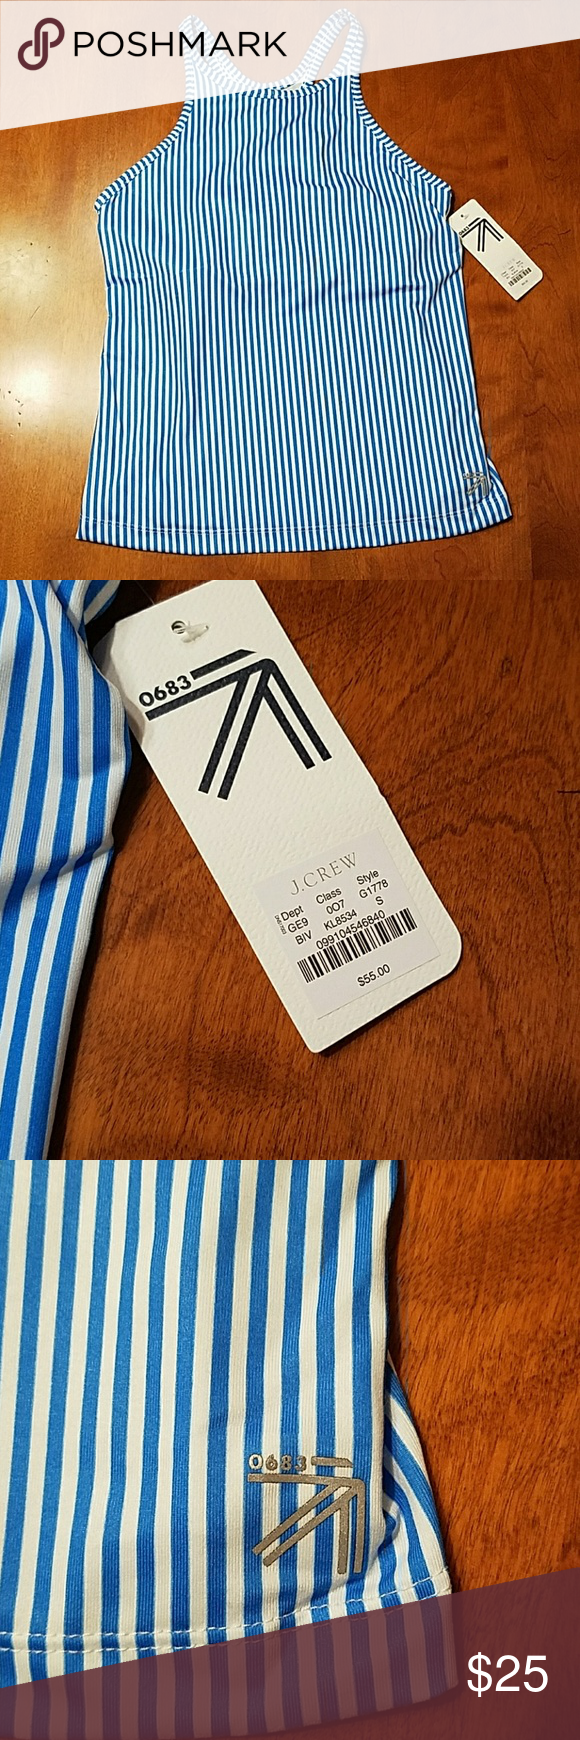 40824434e0b88 J.Crew New Balance workout sports bra tank This blue and white striped New  Balance top from J.Crew is brand new with tags. Has a built-in bra.